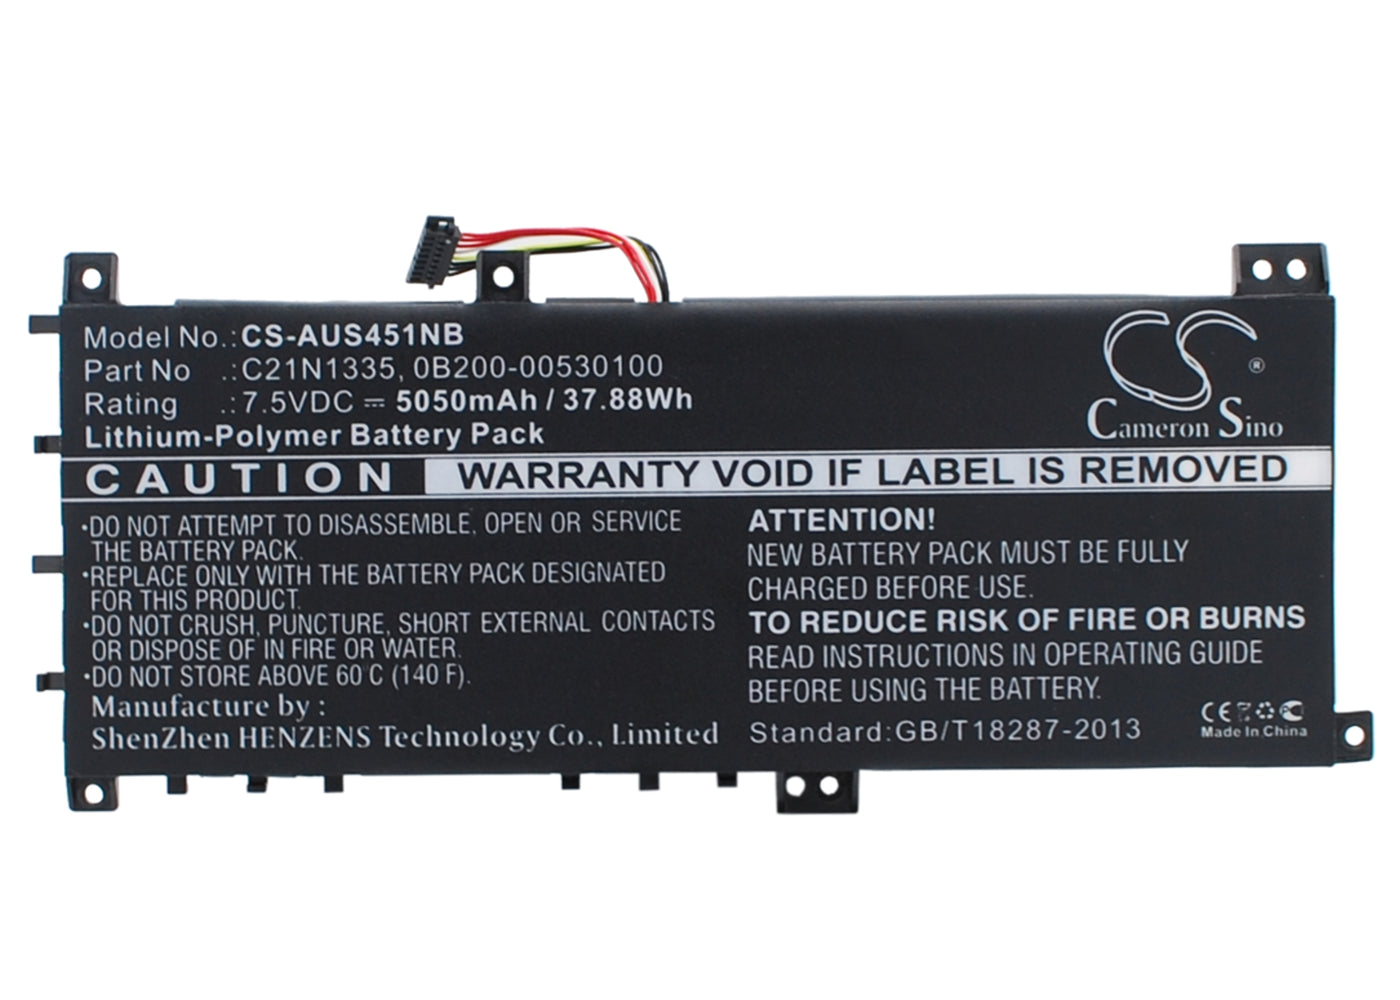 CS-AUS451NB Cameron Sino Battery